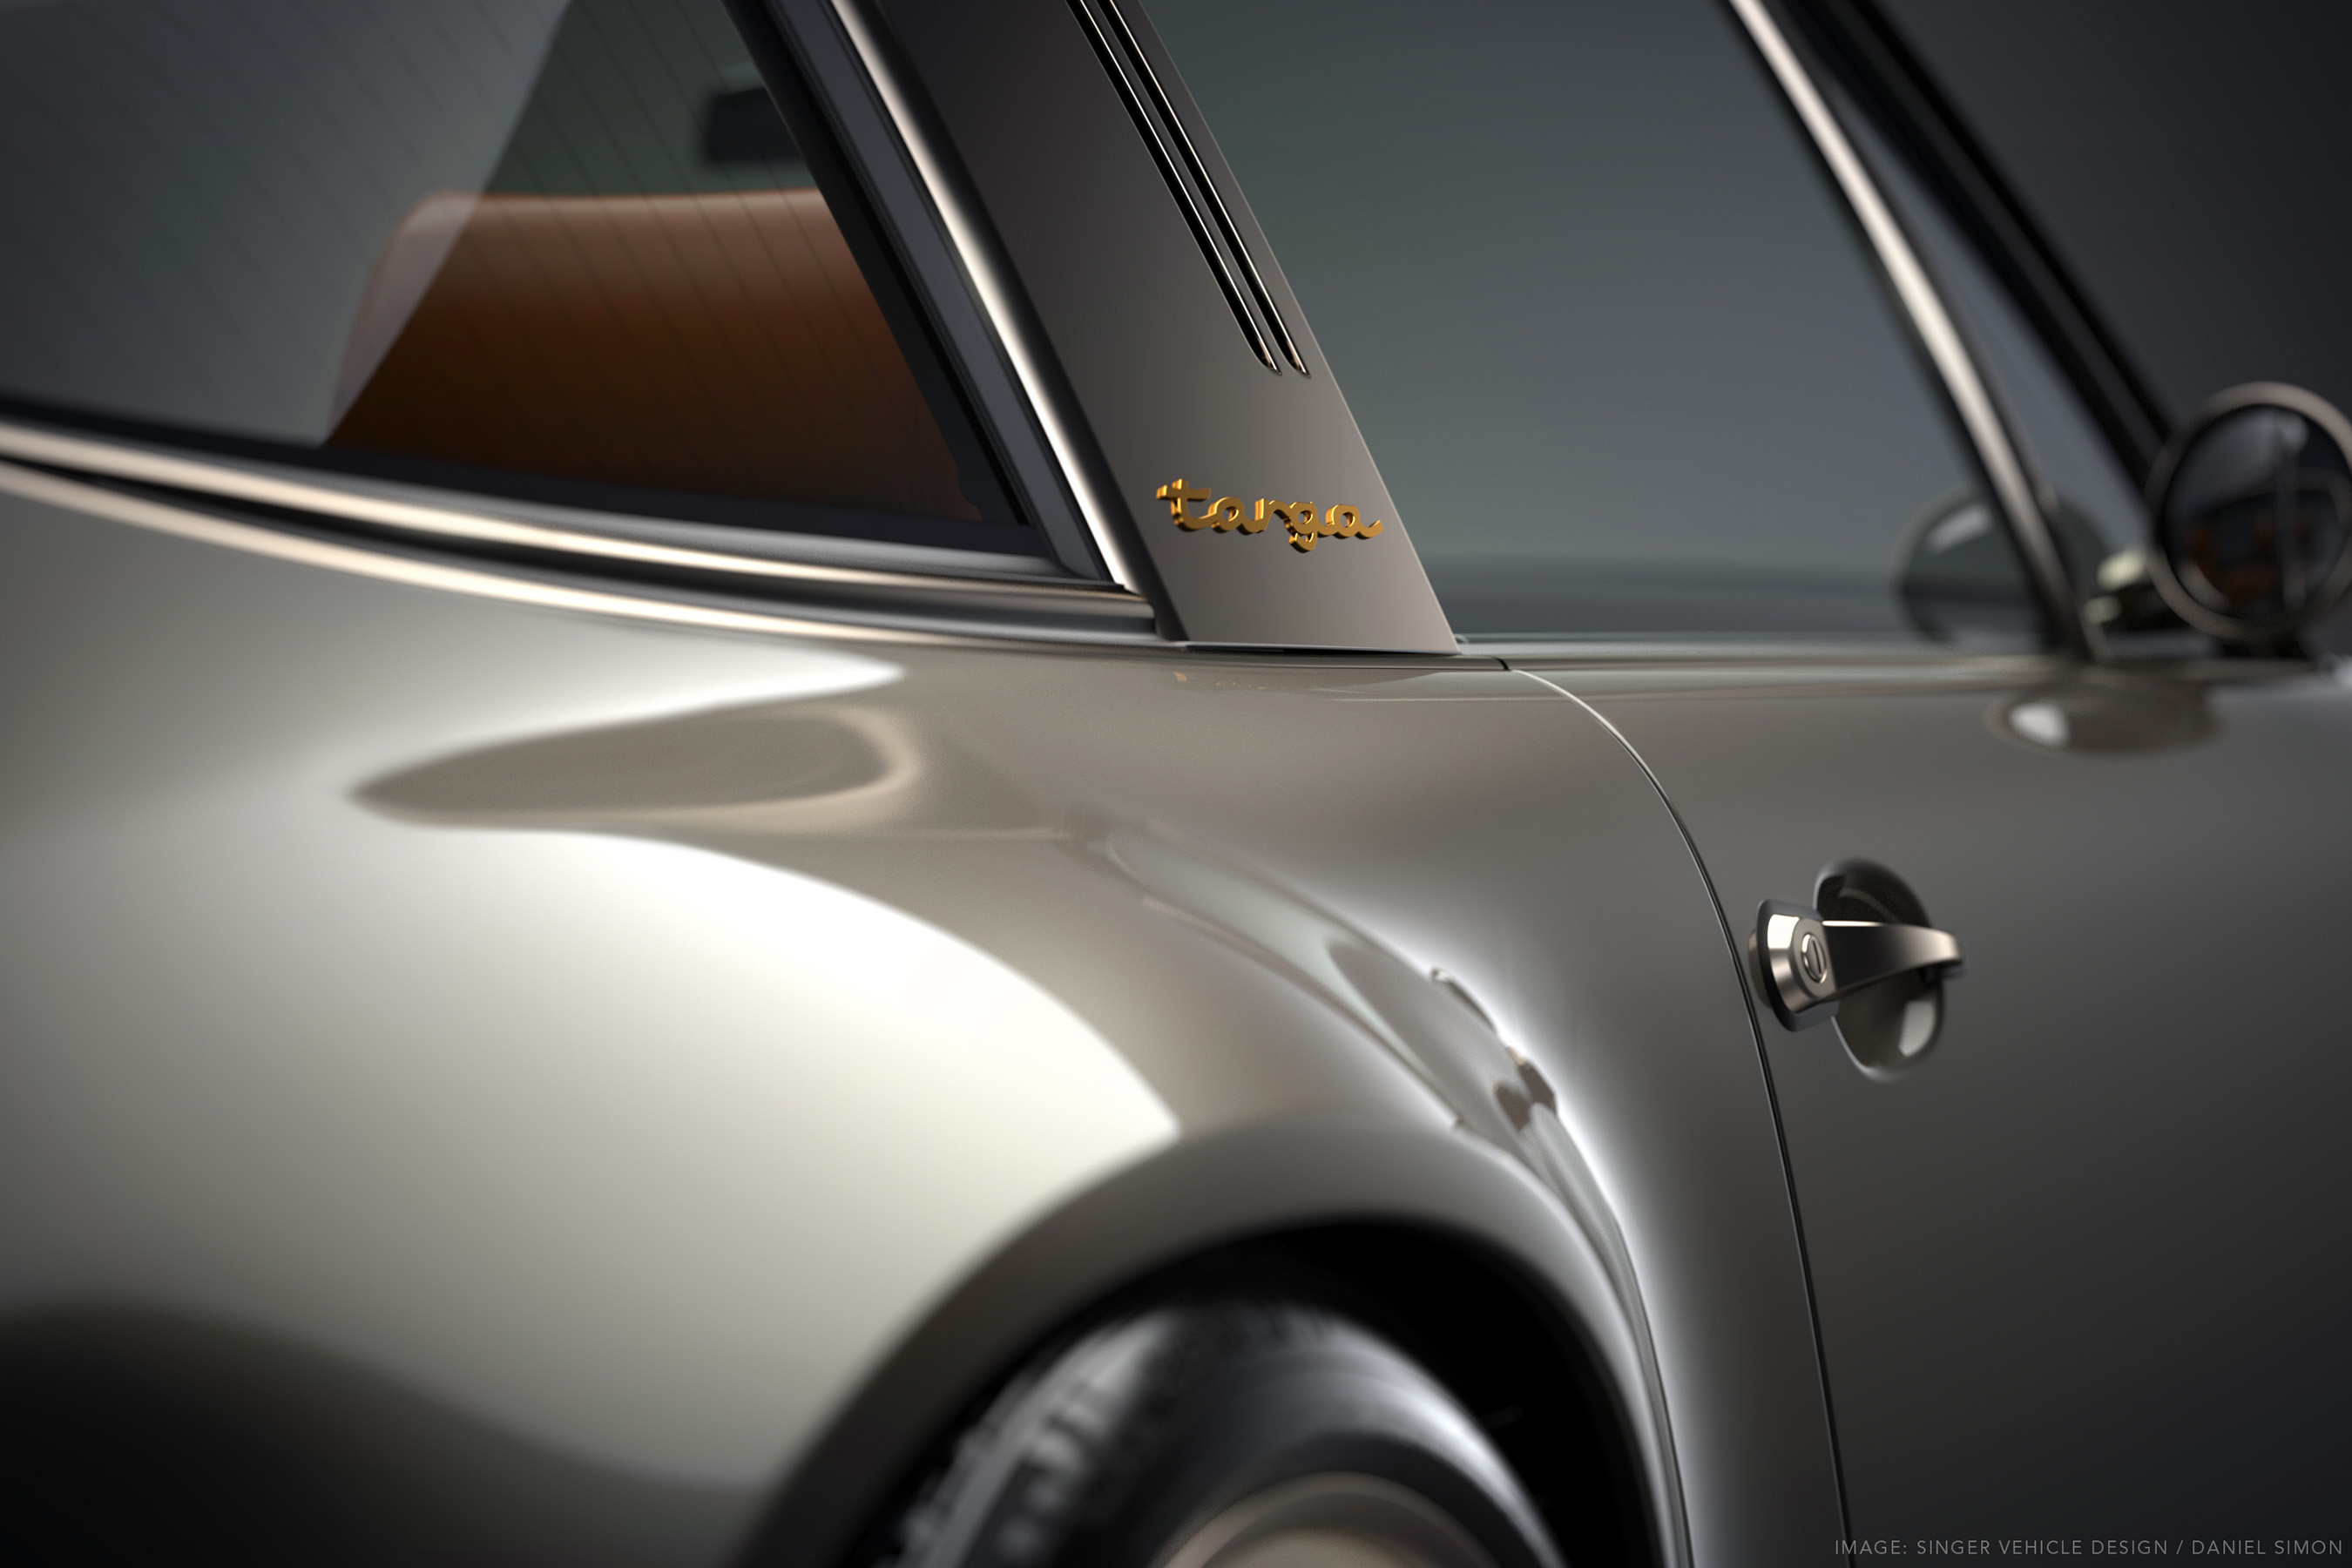 Singer to debut Porsche 911 Targa at Goodwood - Autos ca